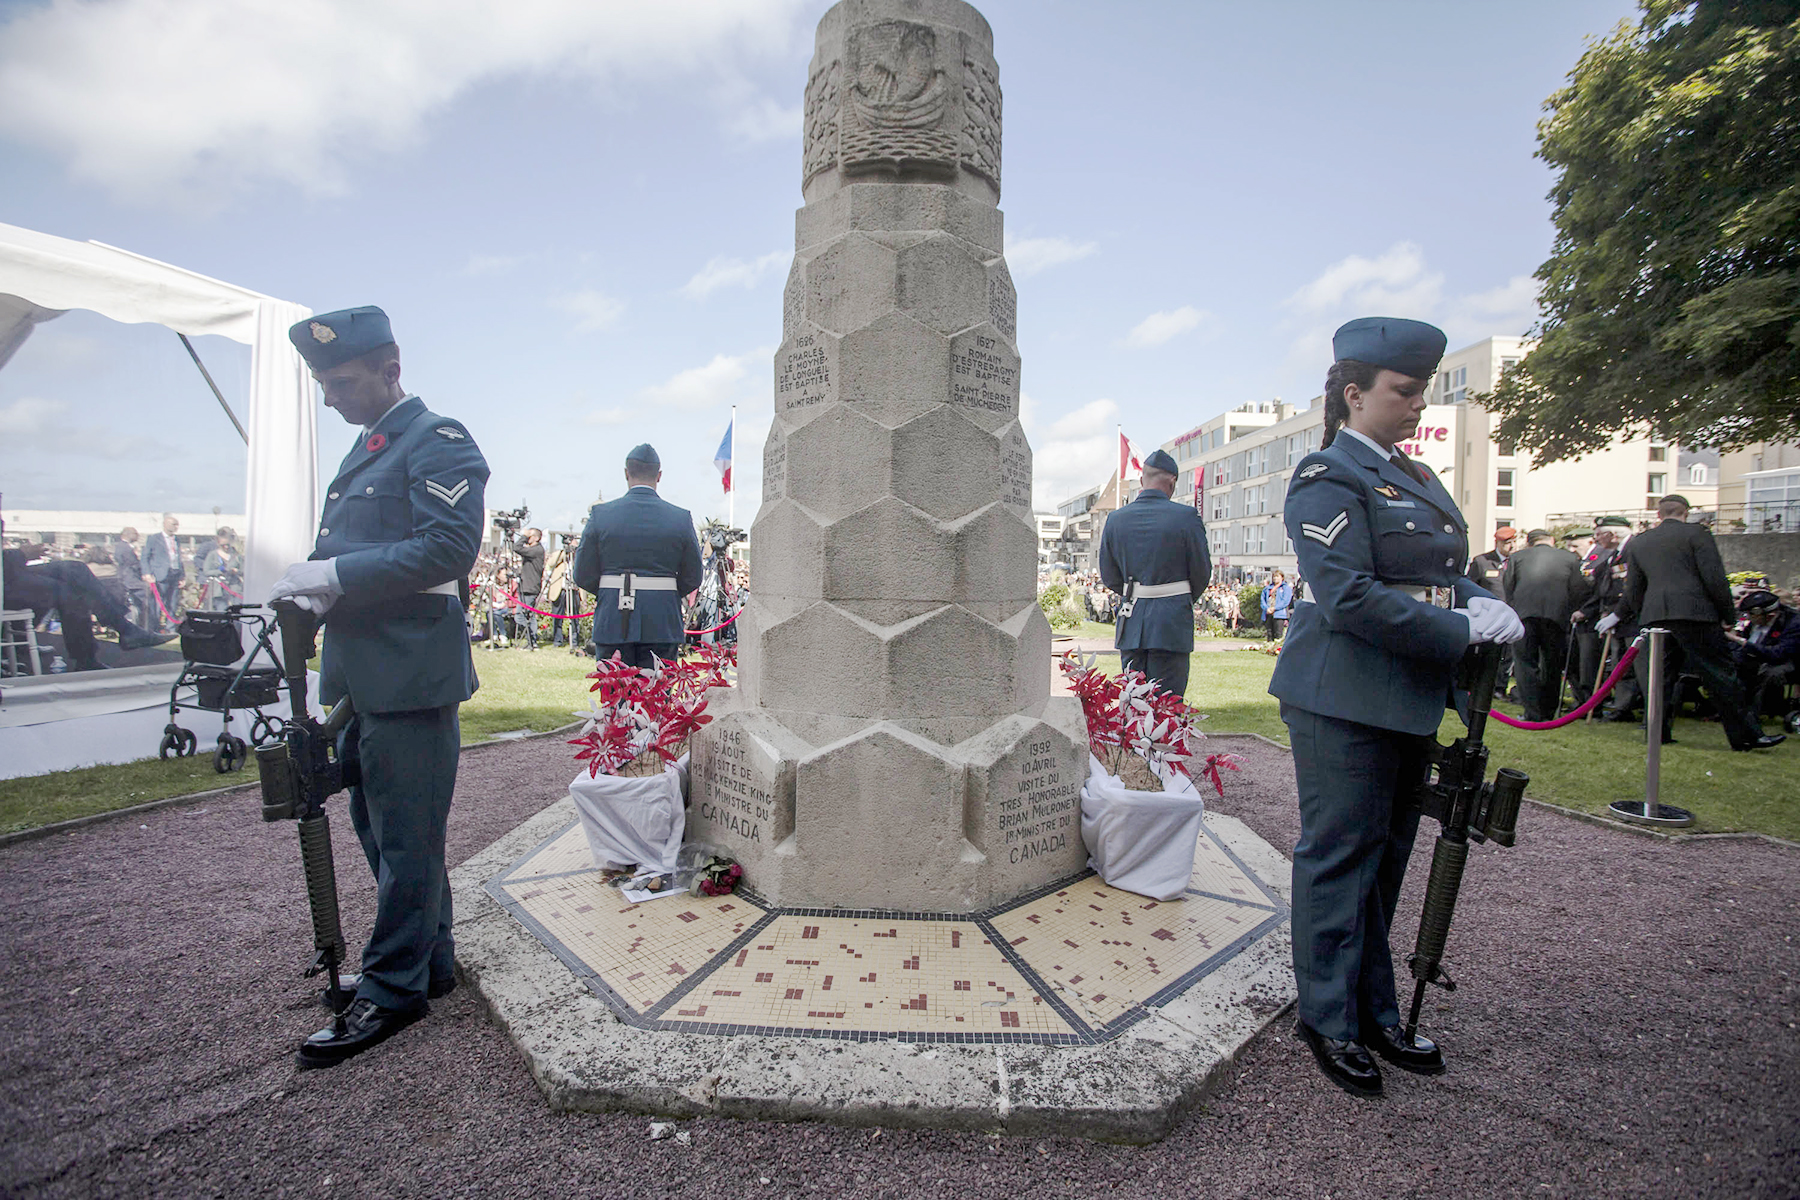 Corporal Alexandre Dingman (front left), Corporal Crystal Roche (front right), Corporal Maxime Caron (back left), and Master Corporal Hugo Belisles (back right), stand vigil at the Dieppe-Canada monument at Square du Canada in Dieppe, France, on August 19, 2017, during a ceremony of remembrance marking the 75th anniversary of the 1942 Dieppe Raid. PHOTO: Submitted